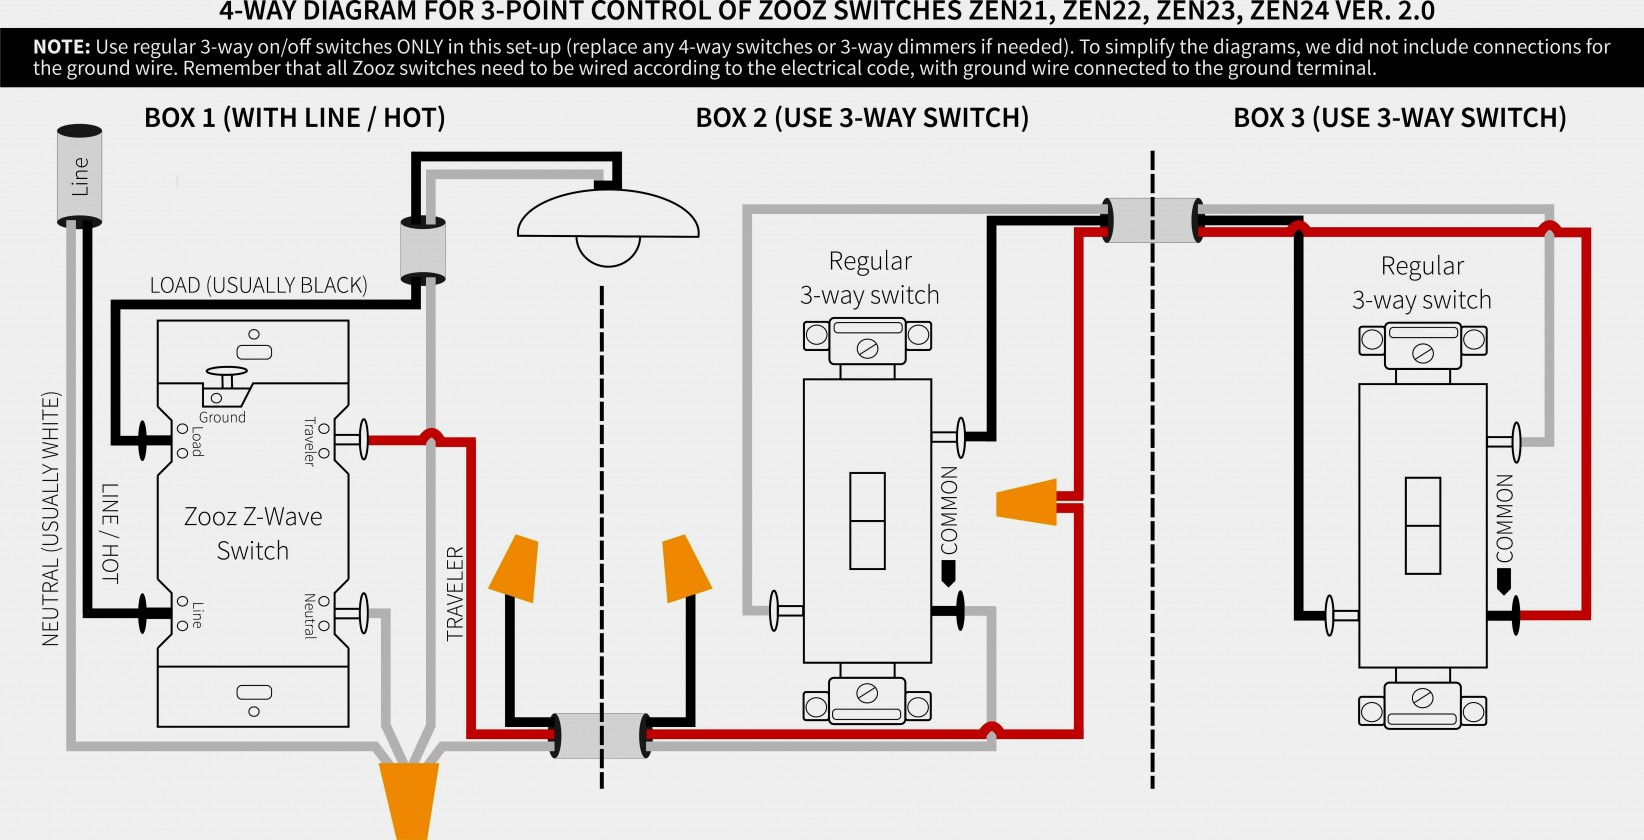 Wiring A 277 Volt 3 Way Switch - Wiring Diagram Blog - 3 Way Dimmer Switch Wiring Diagram